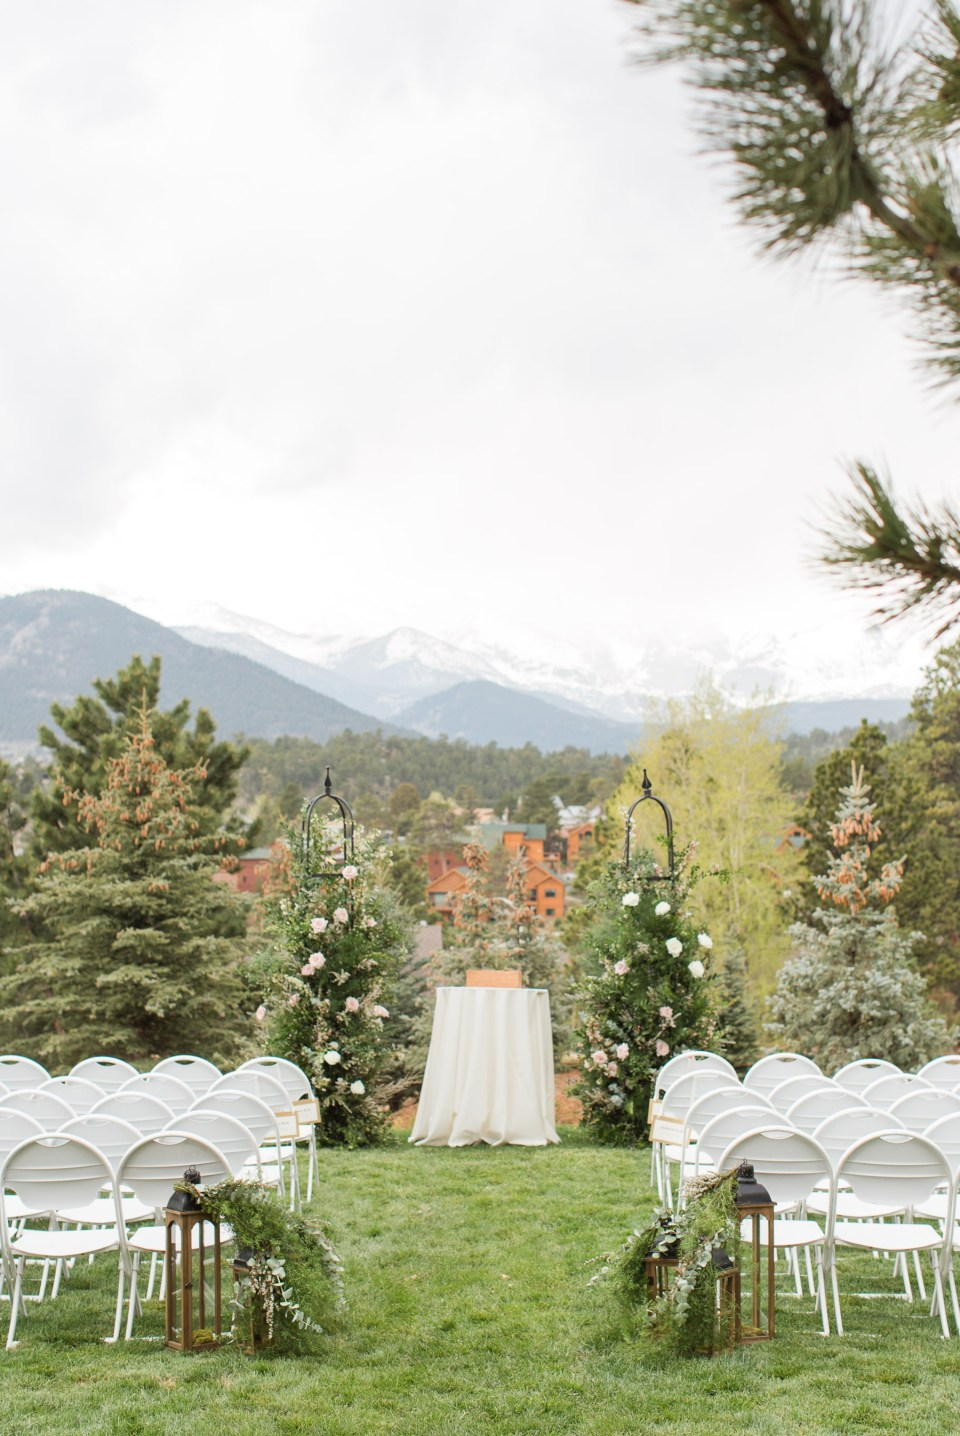 Wedding ceremony site at the Stanley Hotel with a view of Longs Peak in Estes Park Colorado. Colorado Wedding Photographer with mountain views.